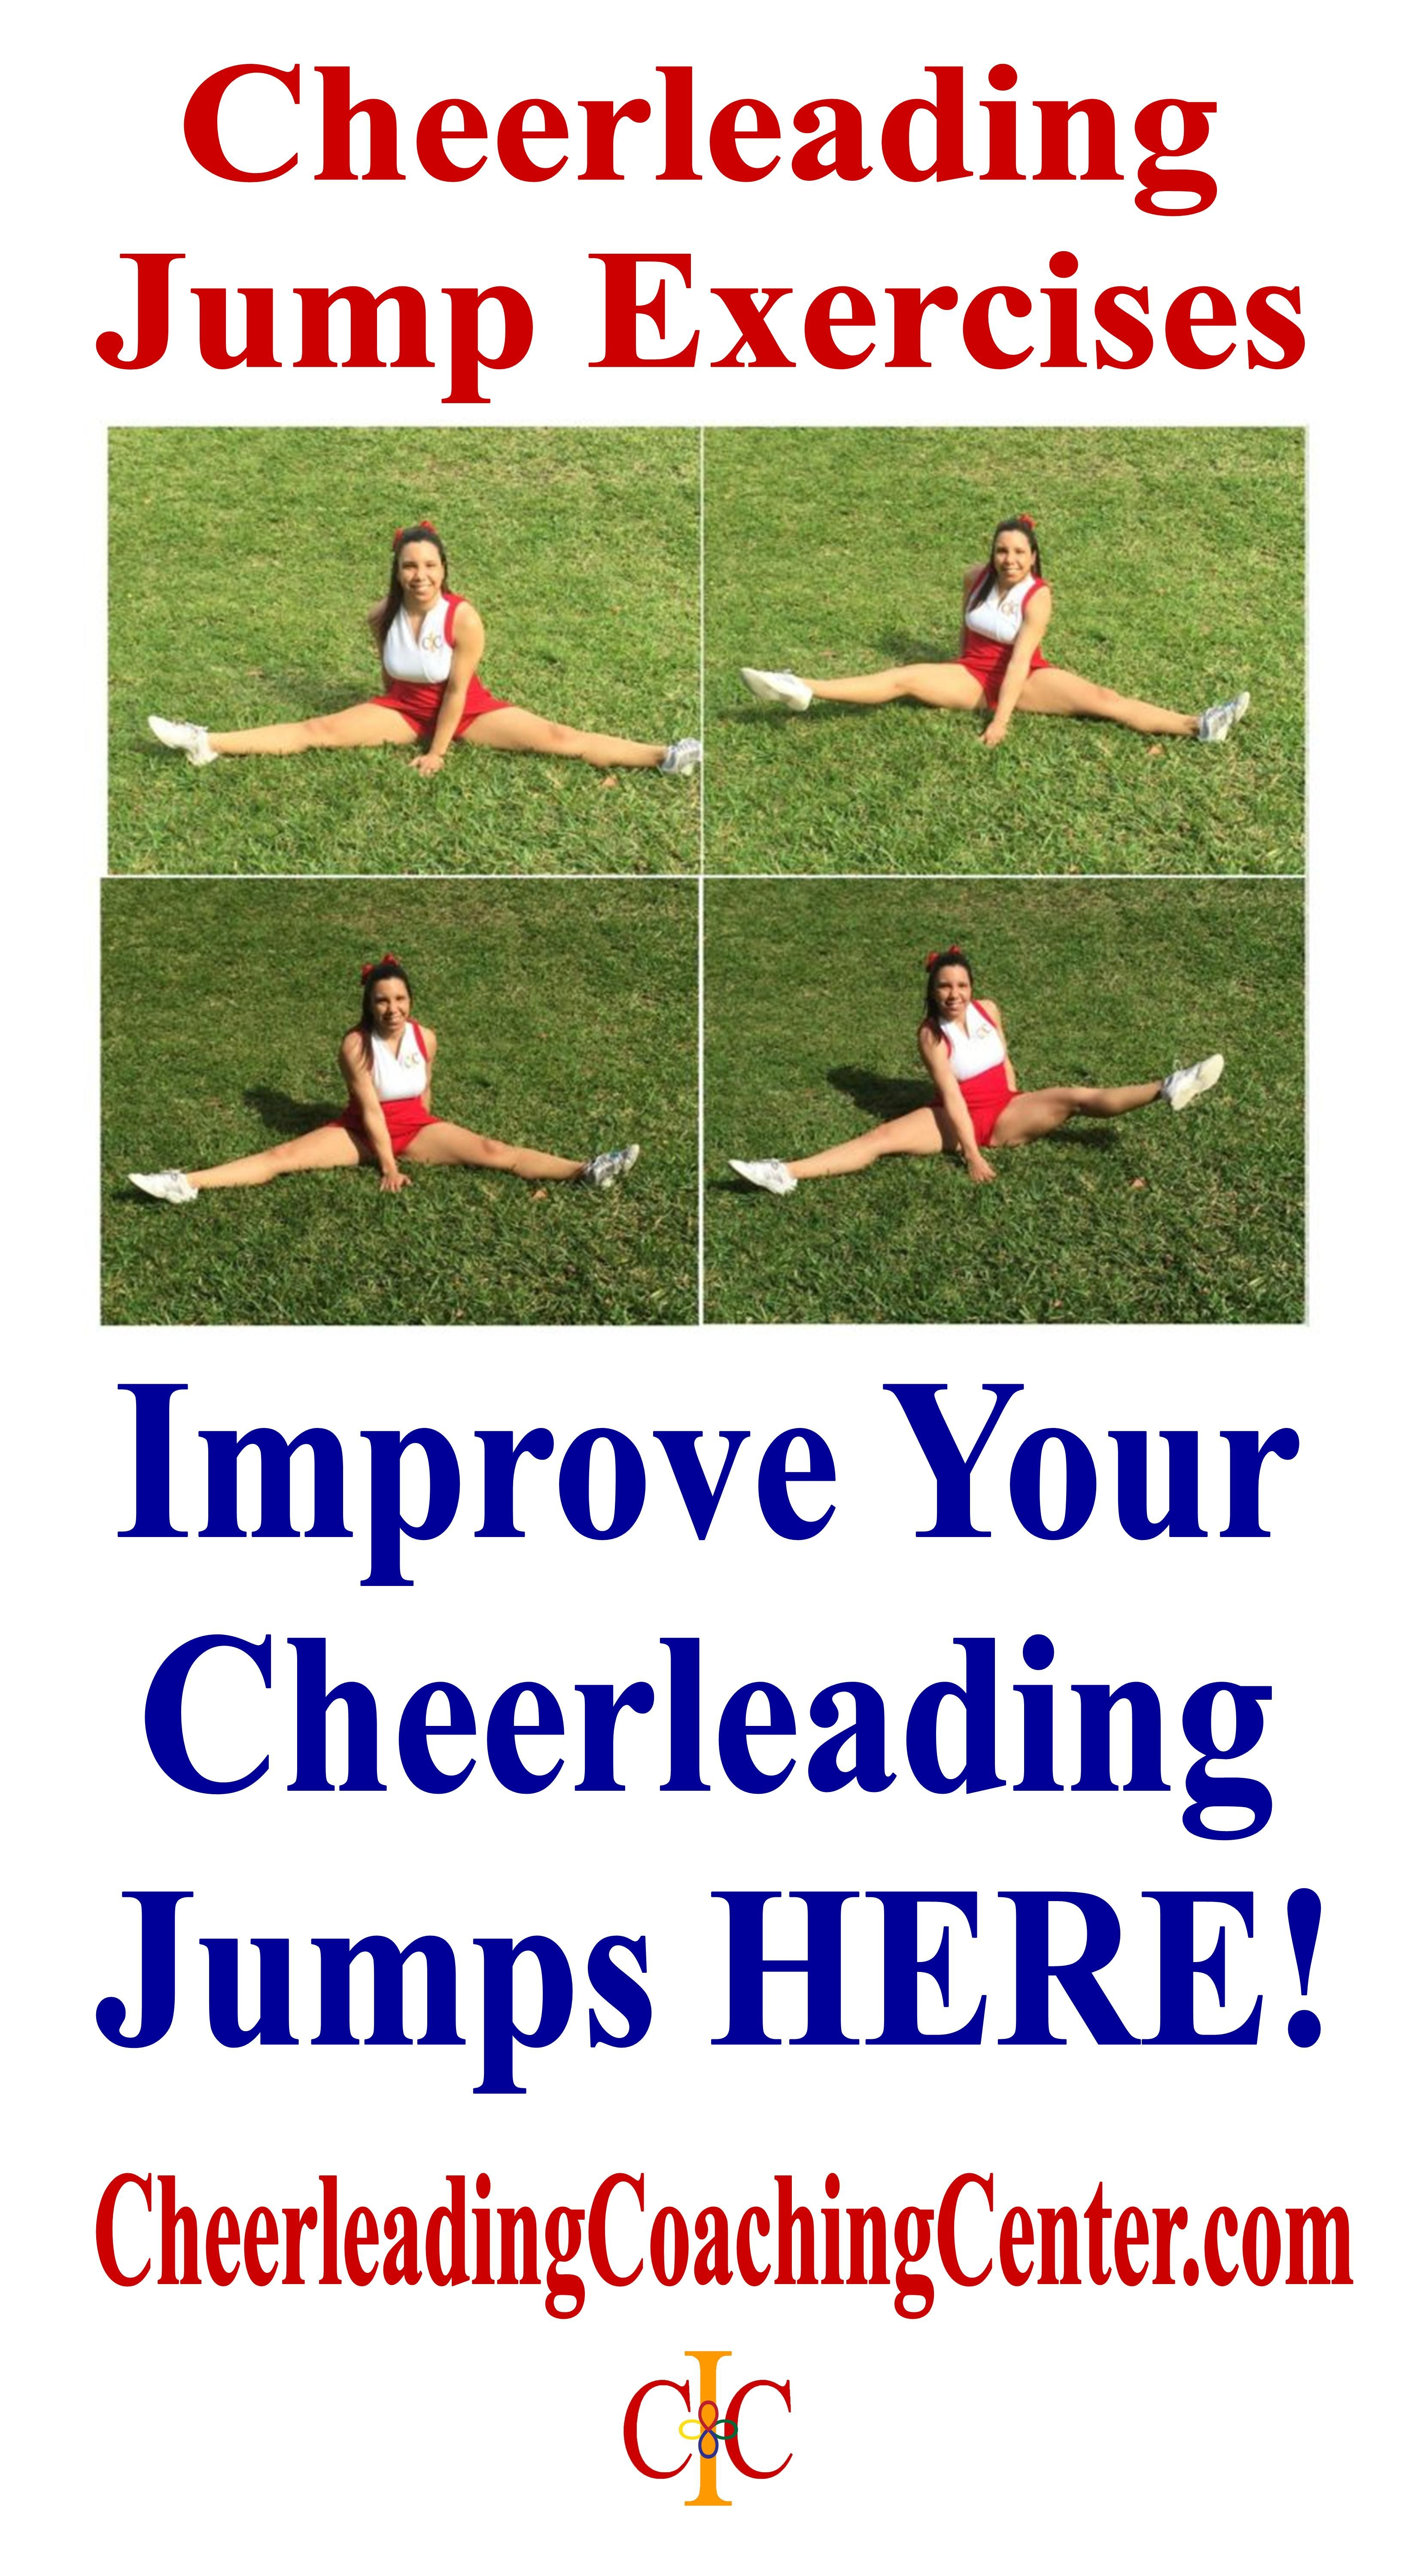 Are you ready to improve your jumps? Check out these cheerleading exercises on CheerleadingCoachingCenter.com :-) #cheerworkouts